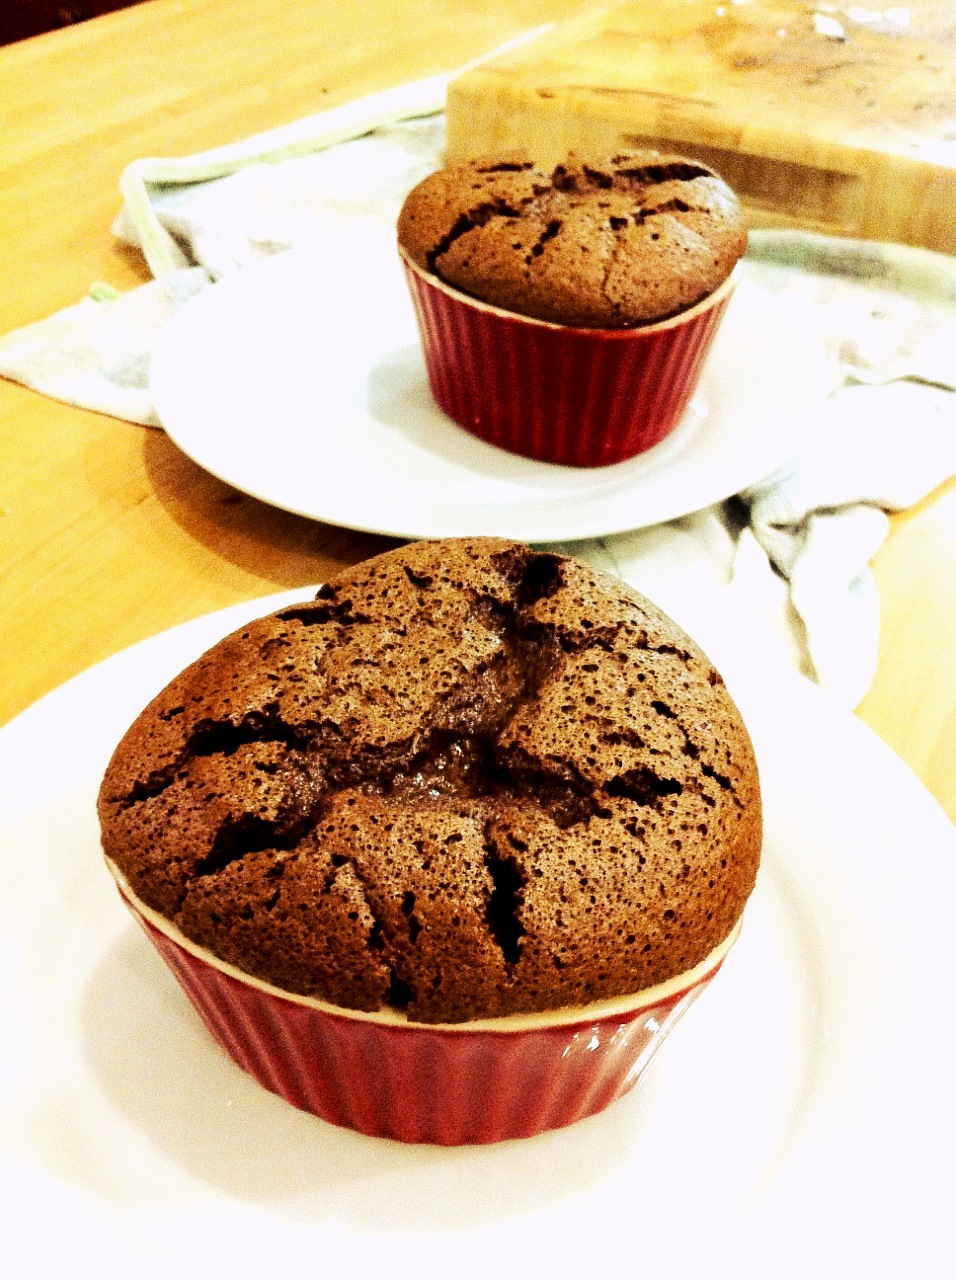 Individual Chocolate Soufflés for two!